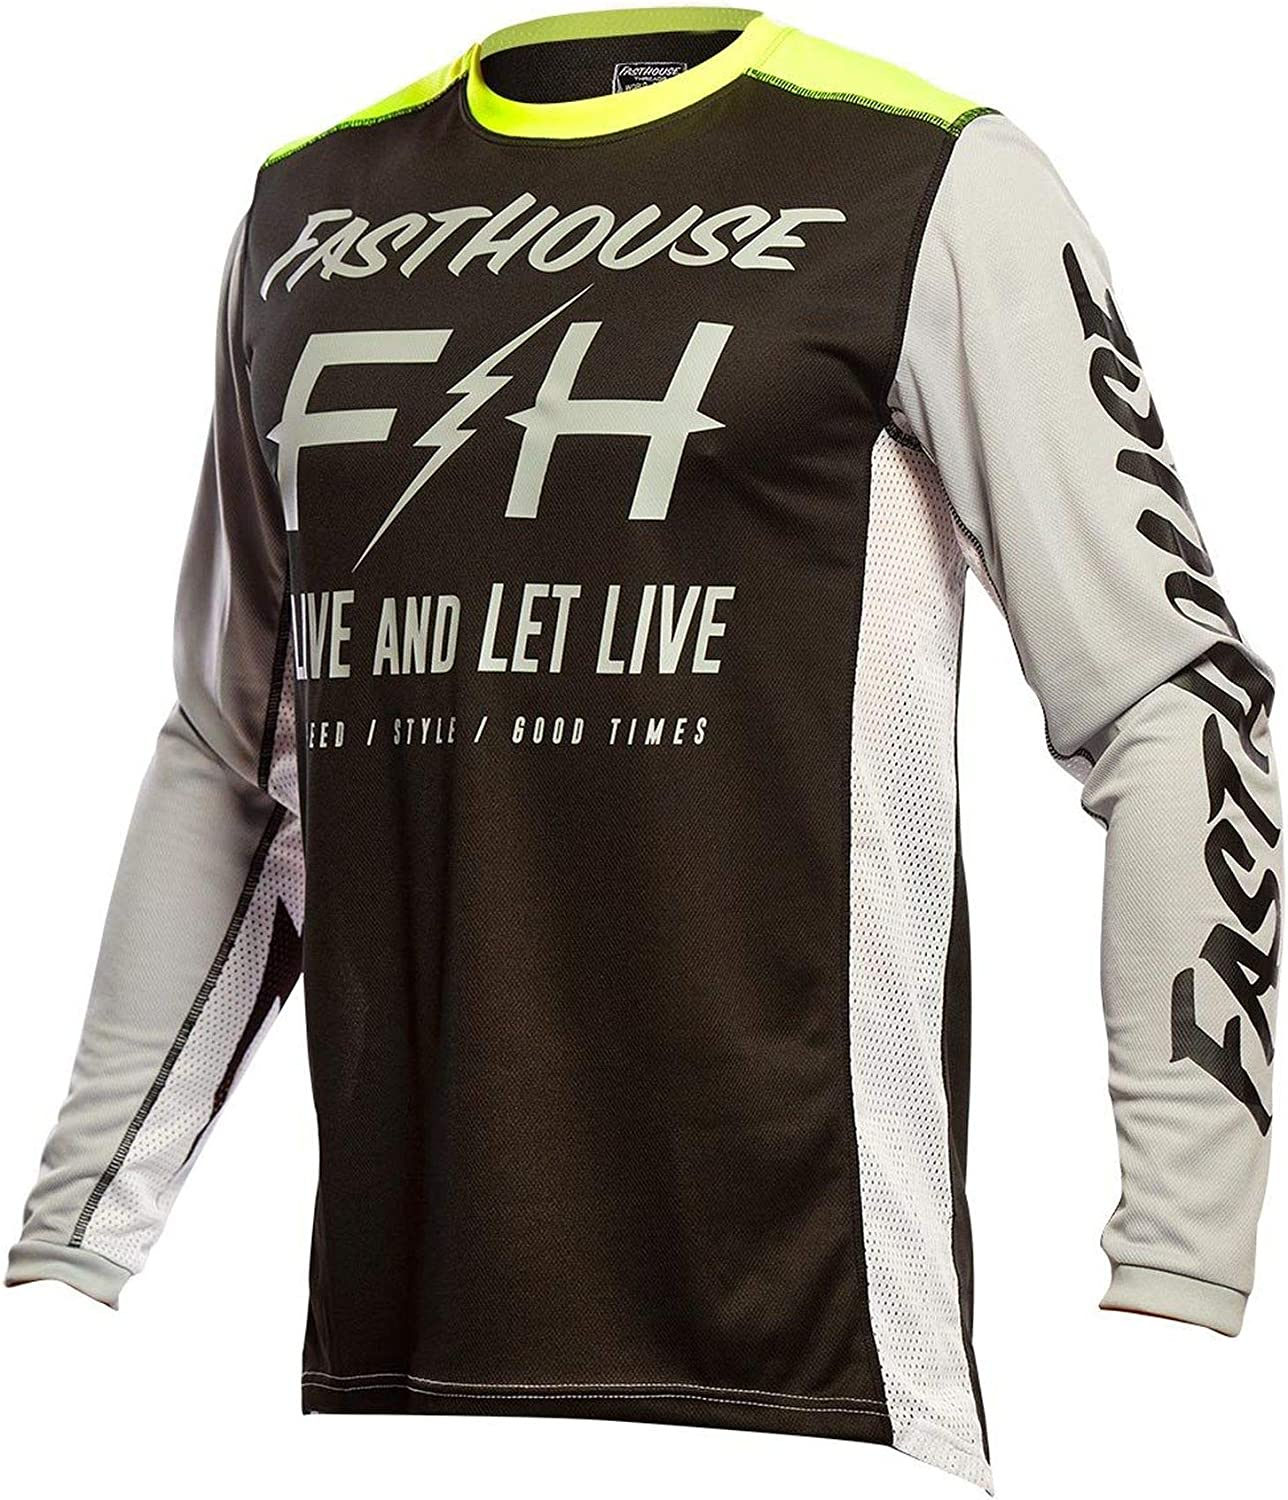 FASTHOUSE Grindhouse Clyde MX Jersey